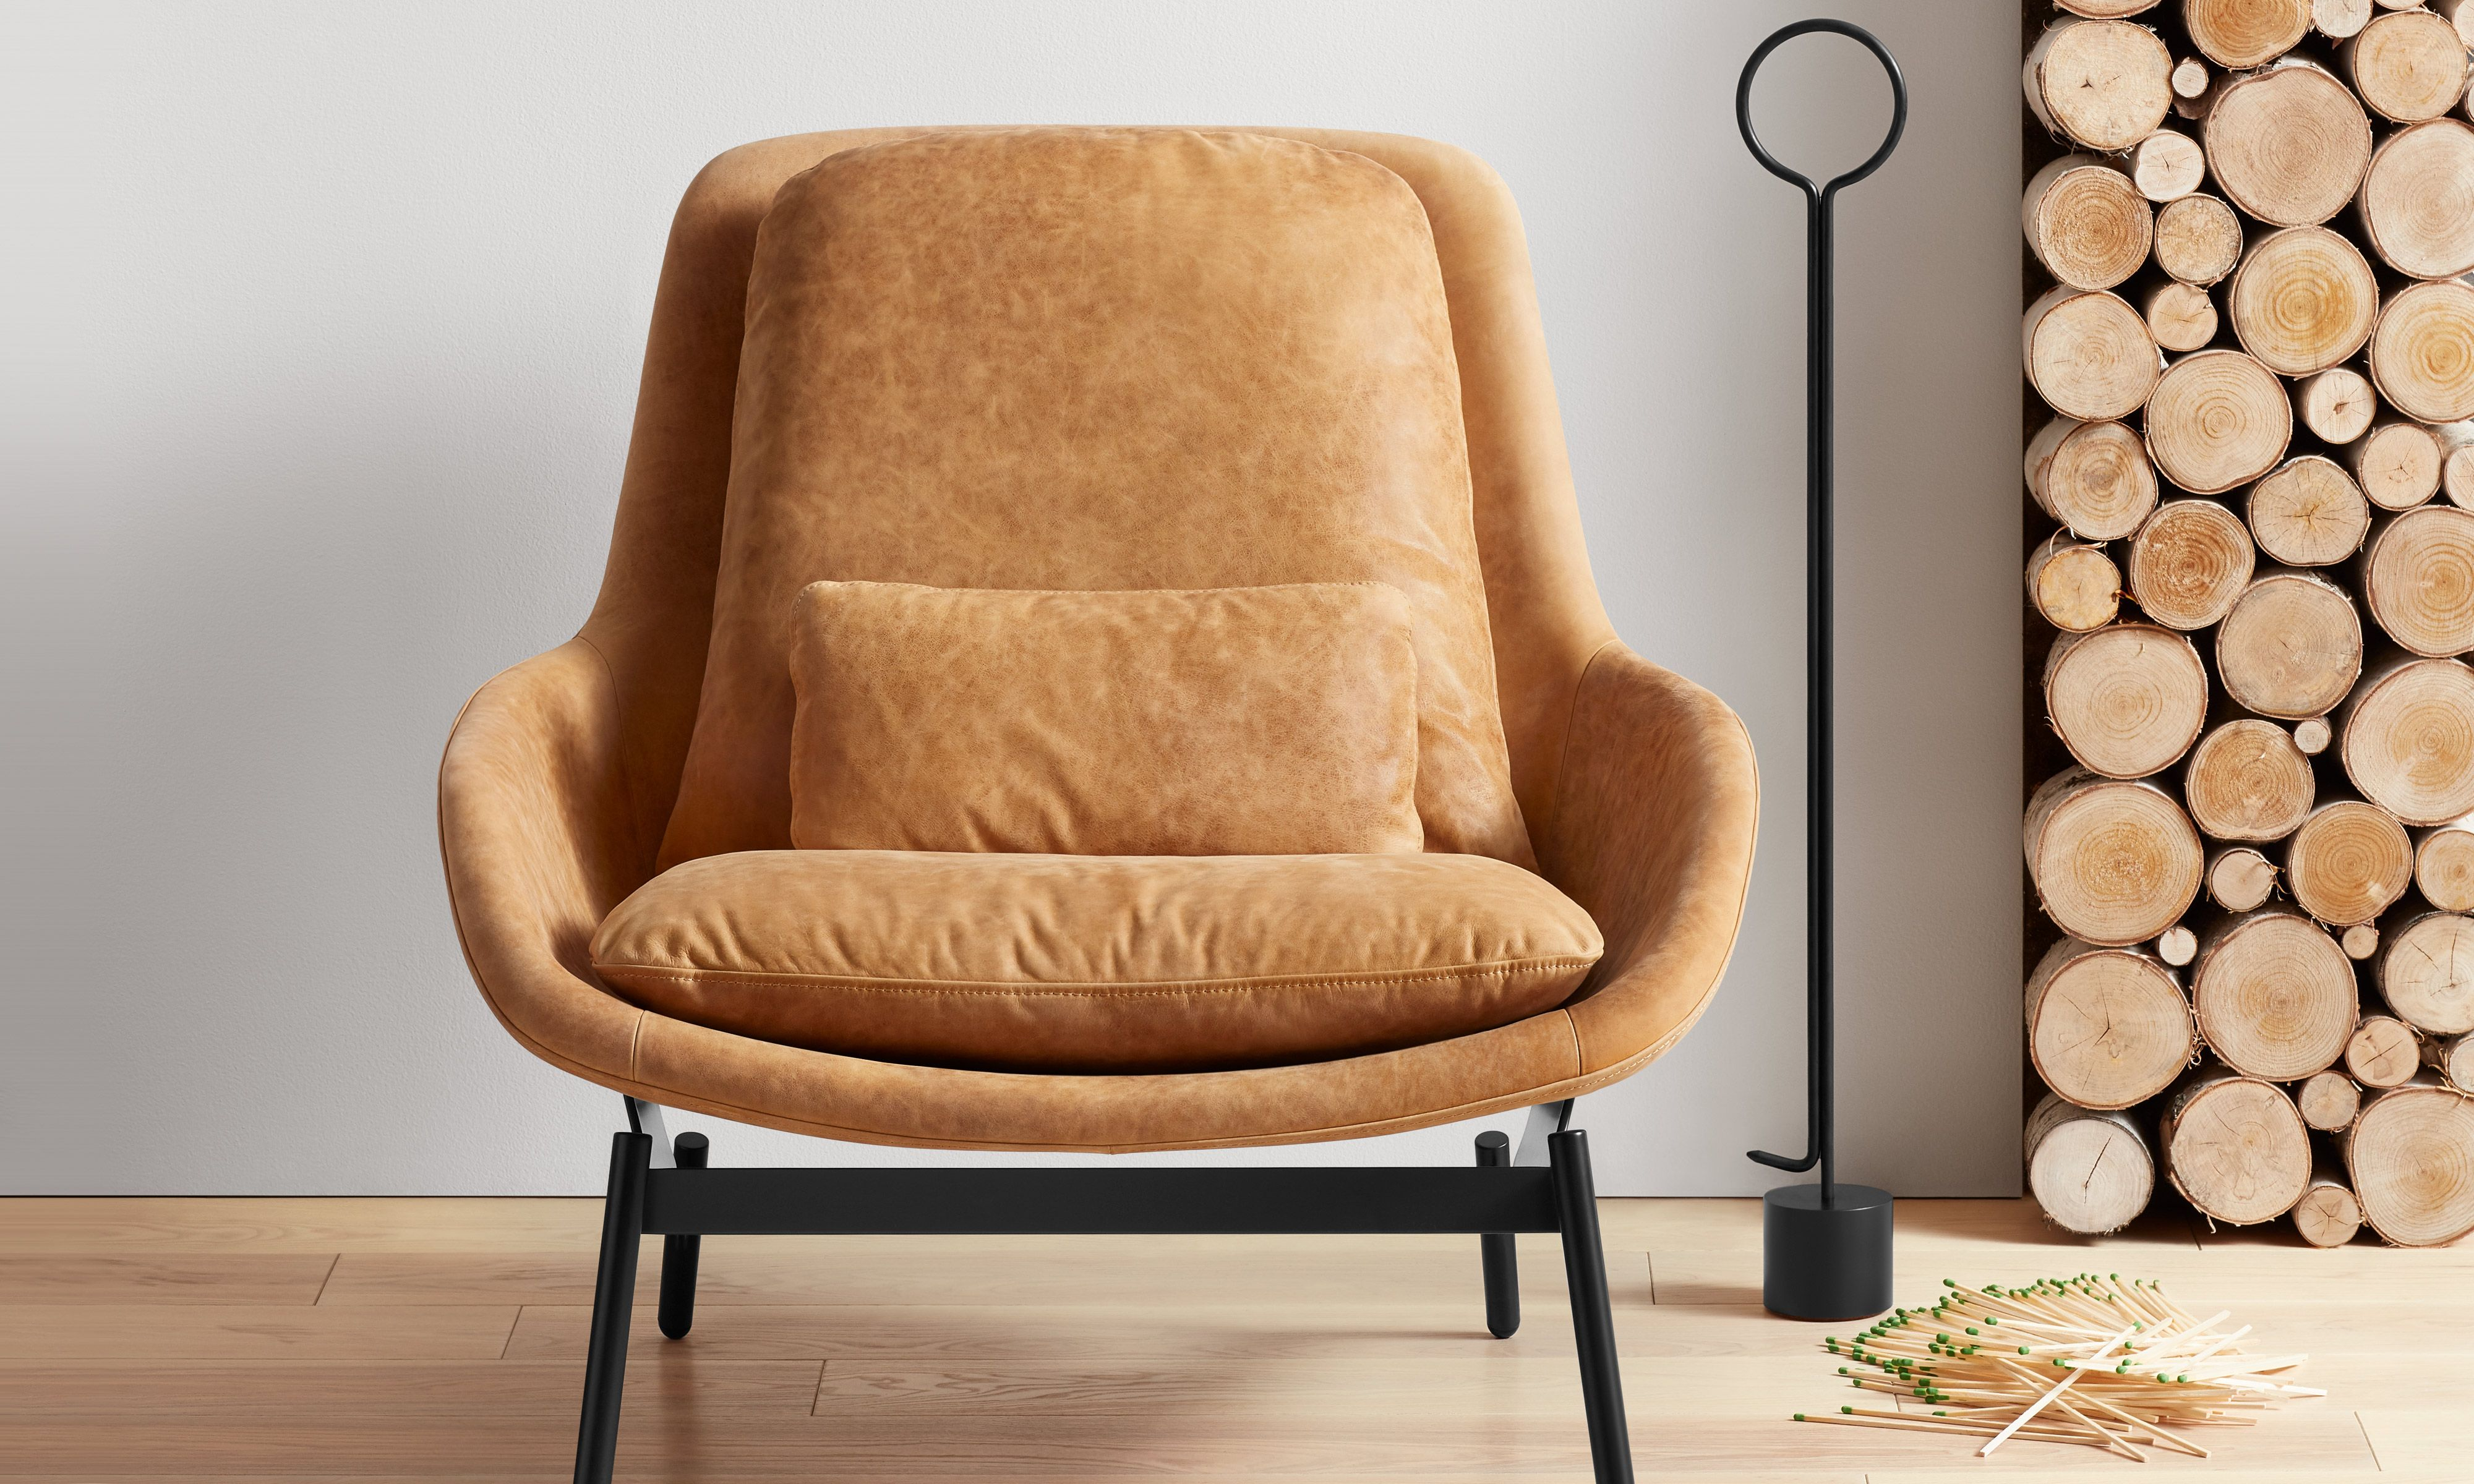 Phenomenal Field Lounge Chair Ink Leather In 2019 Most Comfortable Andrewgaddart Wooden Chair Designs For Living Room Andrewgaddartcom